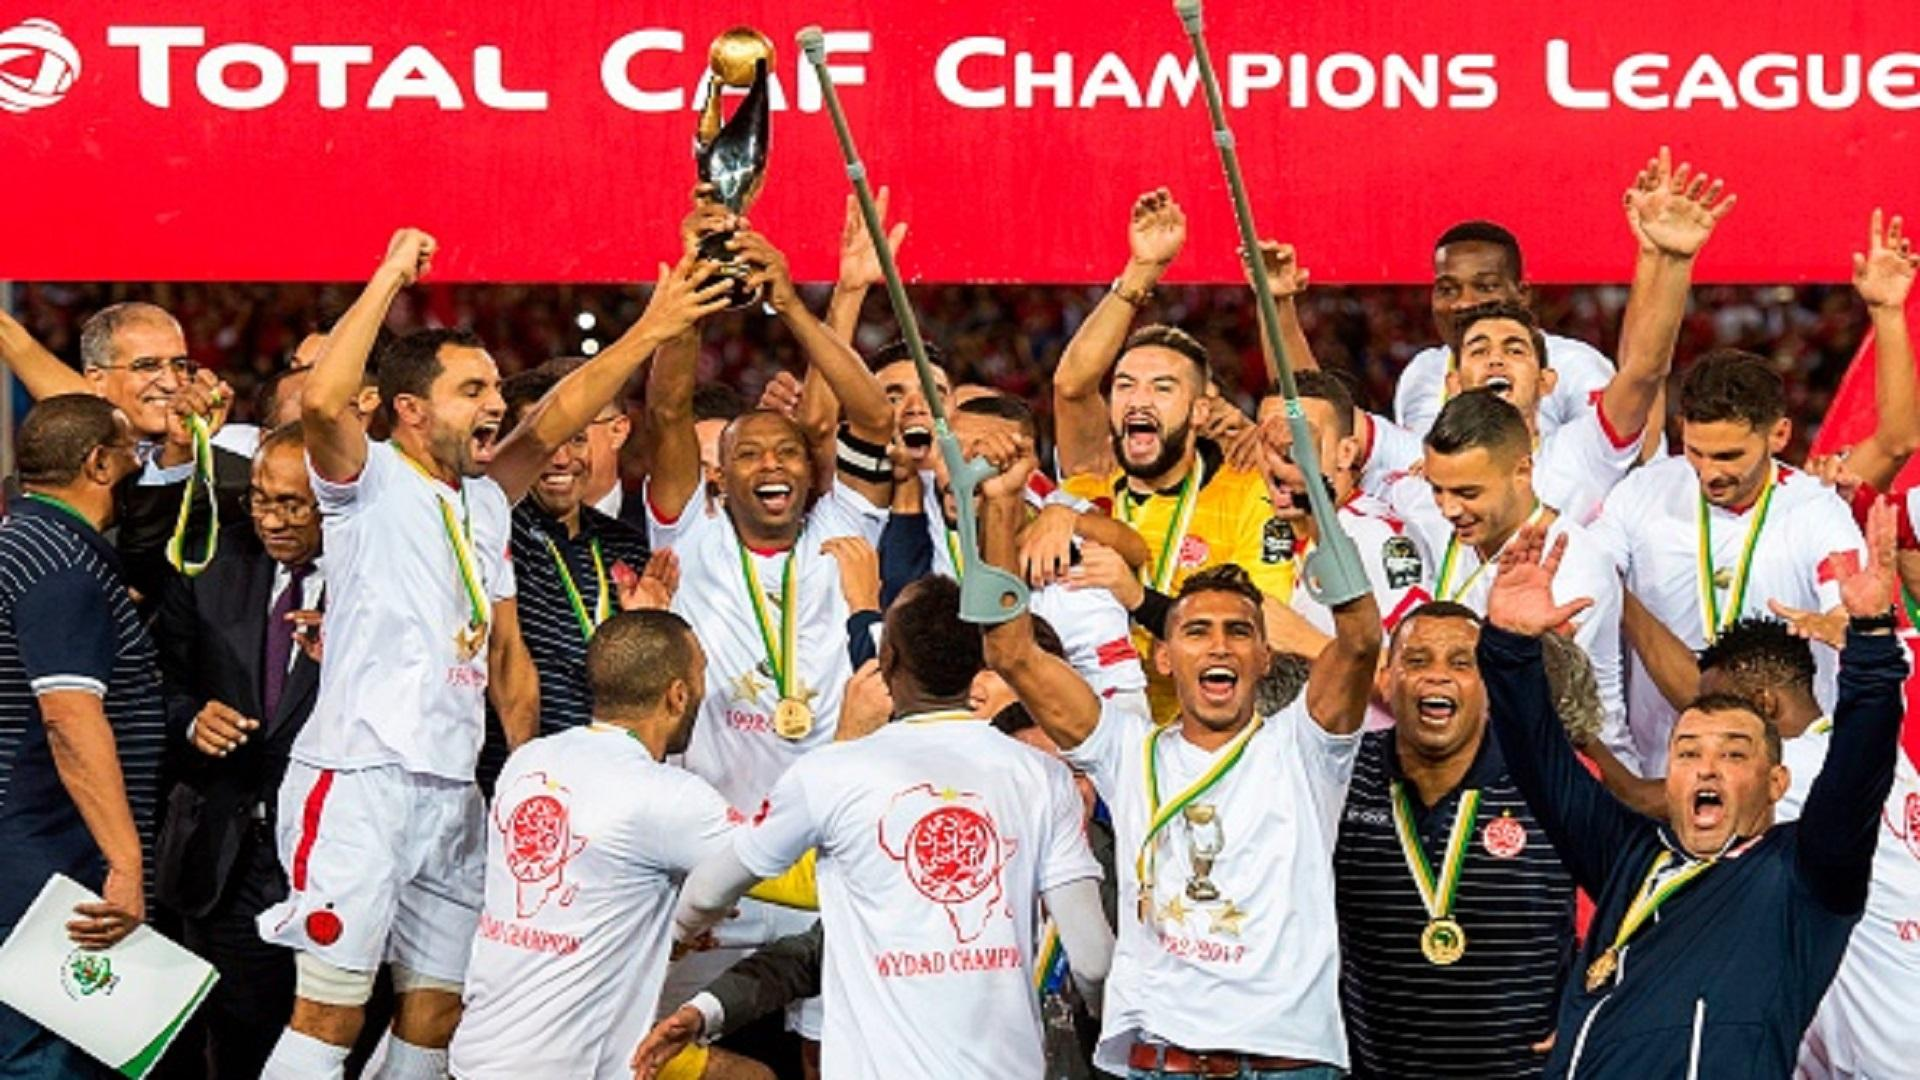 When is the Caf Champions League draw and how can I watch it?